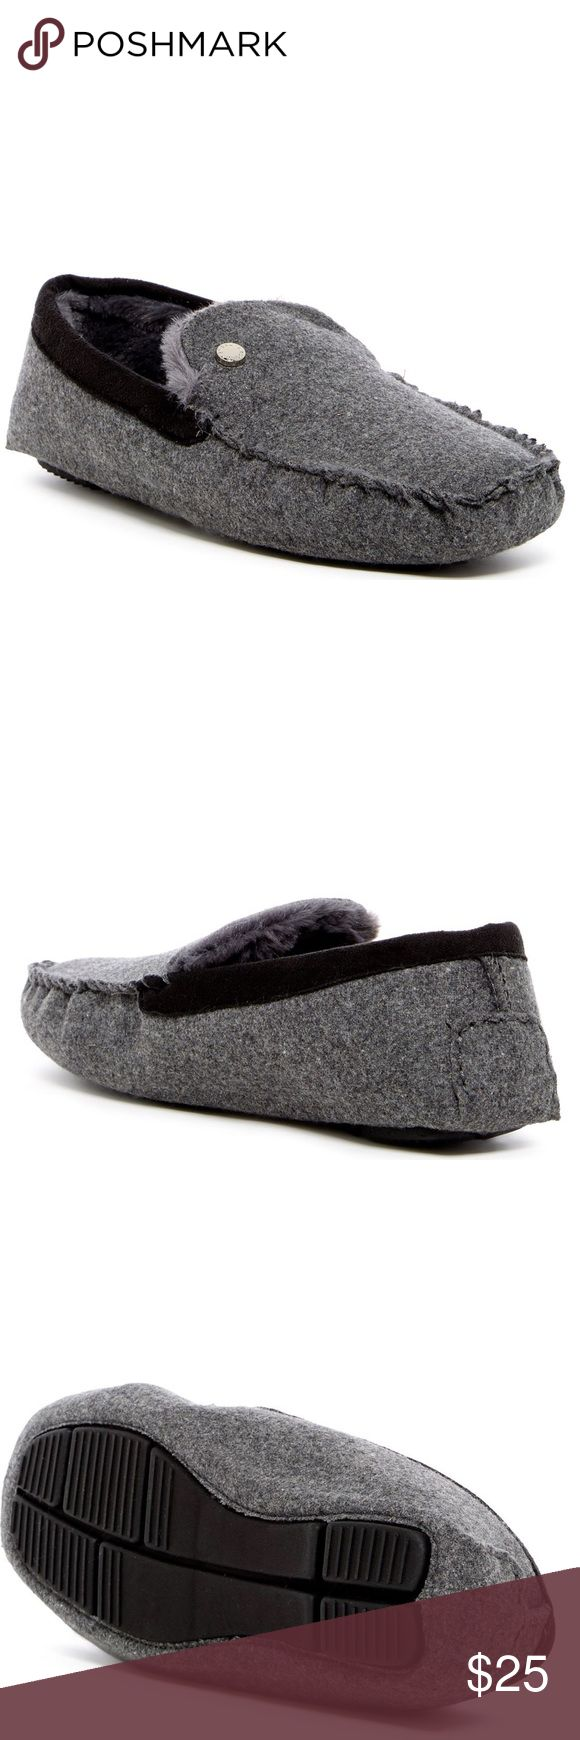 NIB Steve Madden Spire Faux Fur Lined Slipper Men' cozy faux fur lined slippers by Steve Madden in Grey.  Moc toe, Slip-on, cushioned insole. Steve Madden Shoes Loafers & Slip-Ons